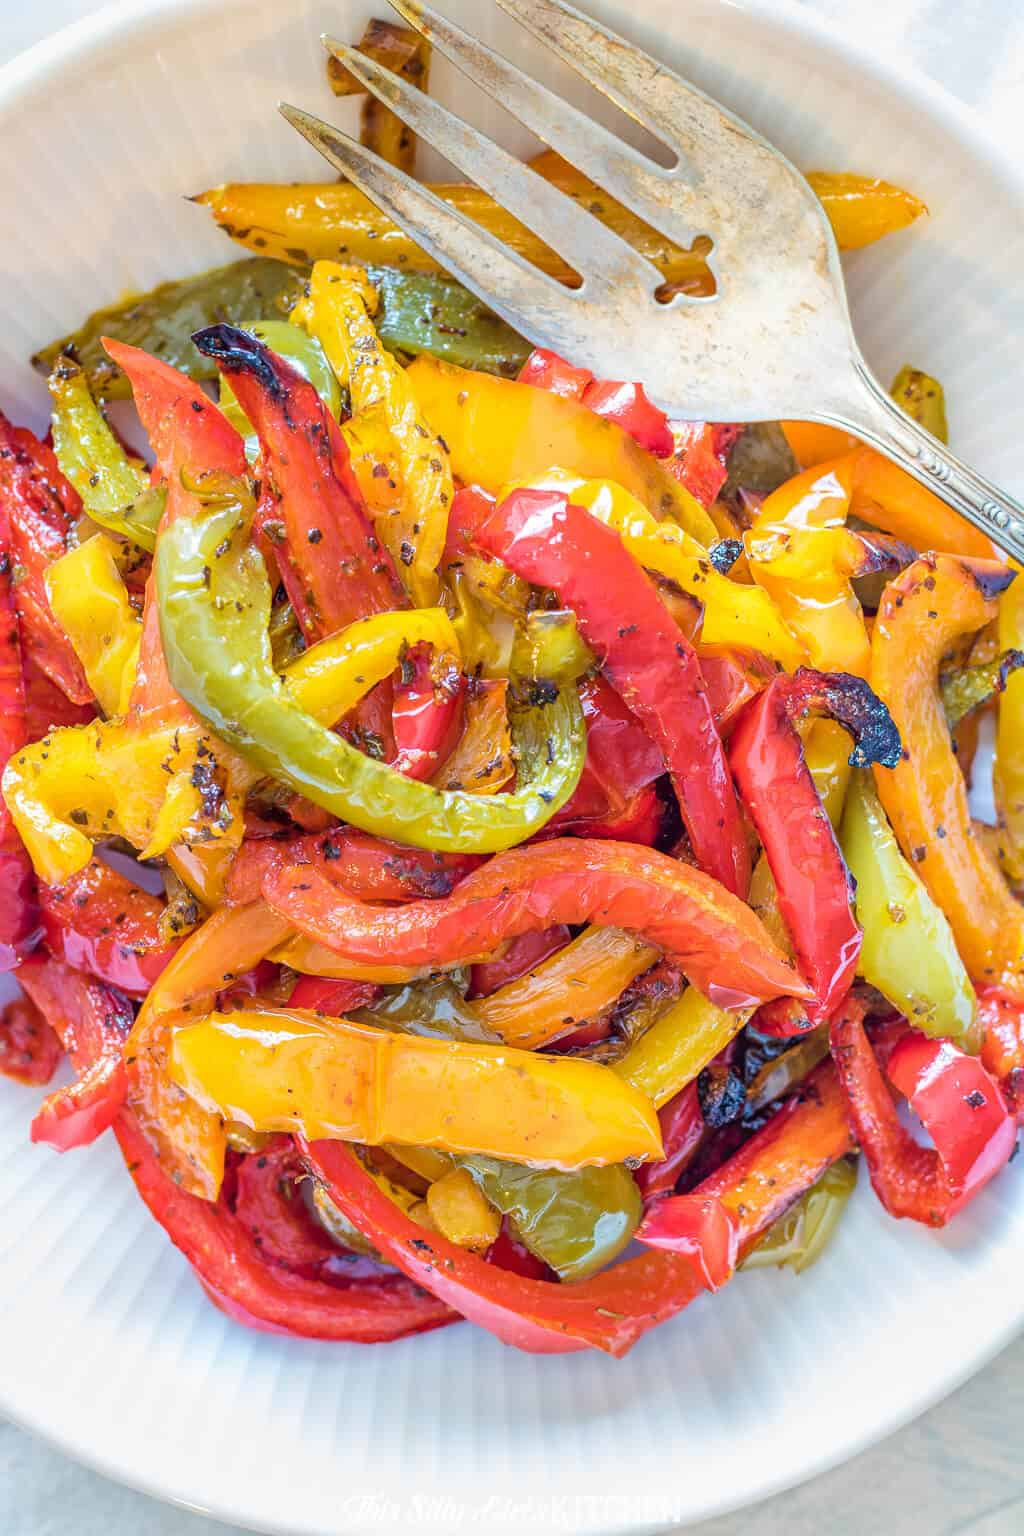 Roasted peppers make for a side dish or topping for many different meals. #recipe from ThisSillyGirlsKitchen.com #roastedpeppers #roastedredpepper #bellpepper #sidedish